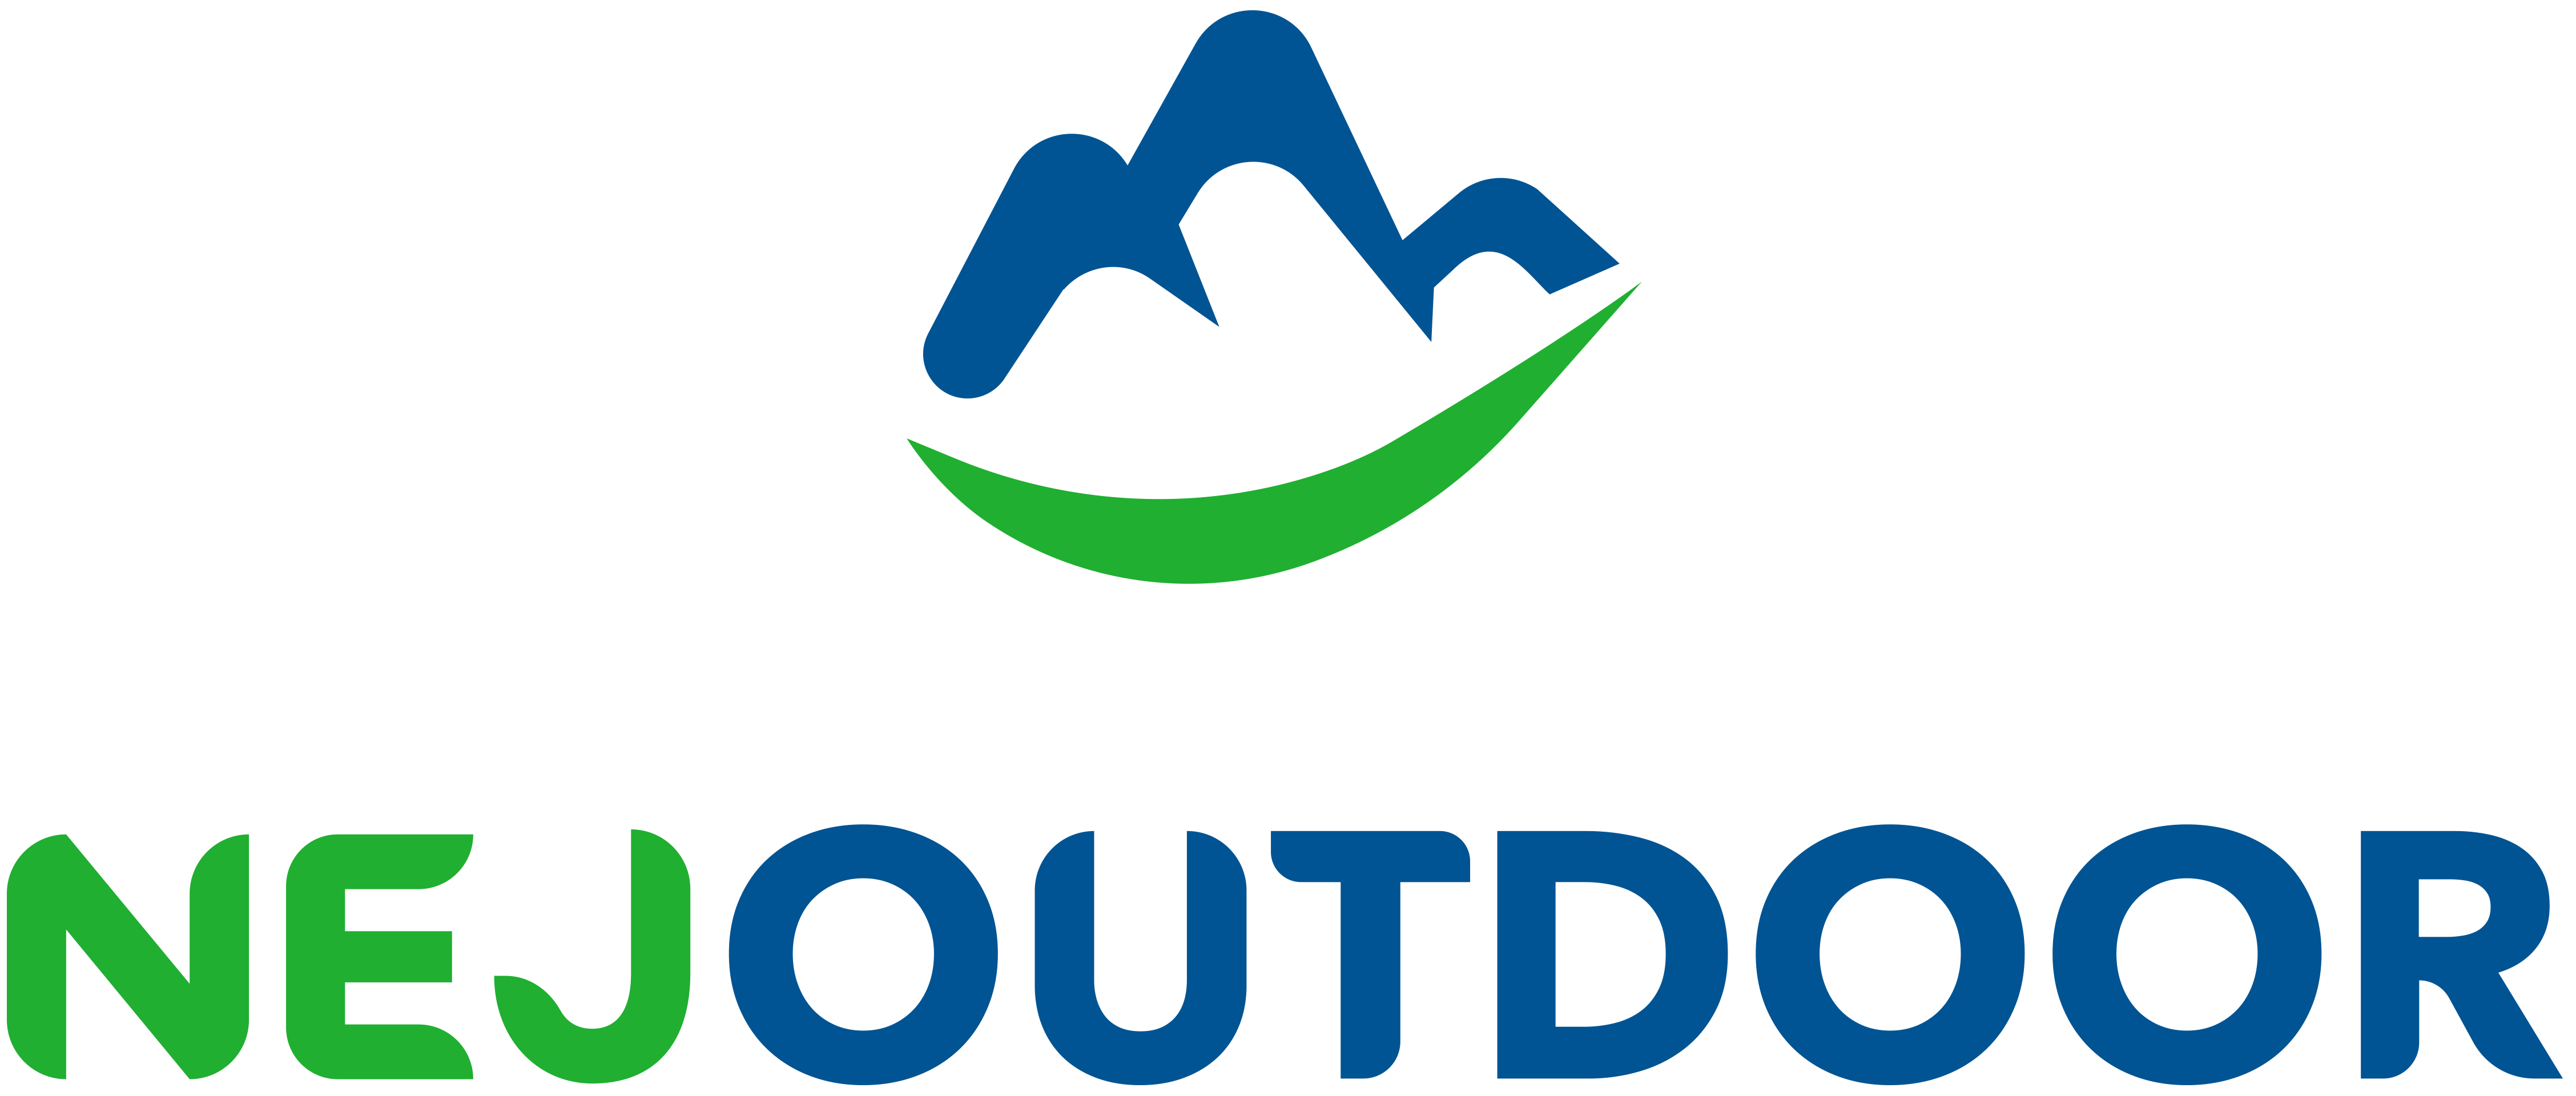 Logo Nejoutdoor.cz